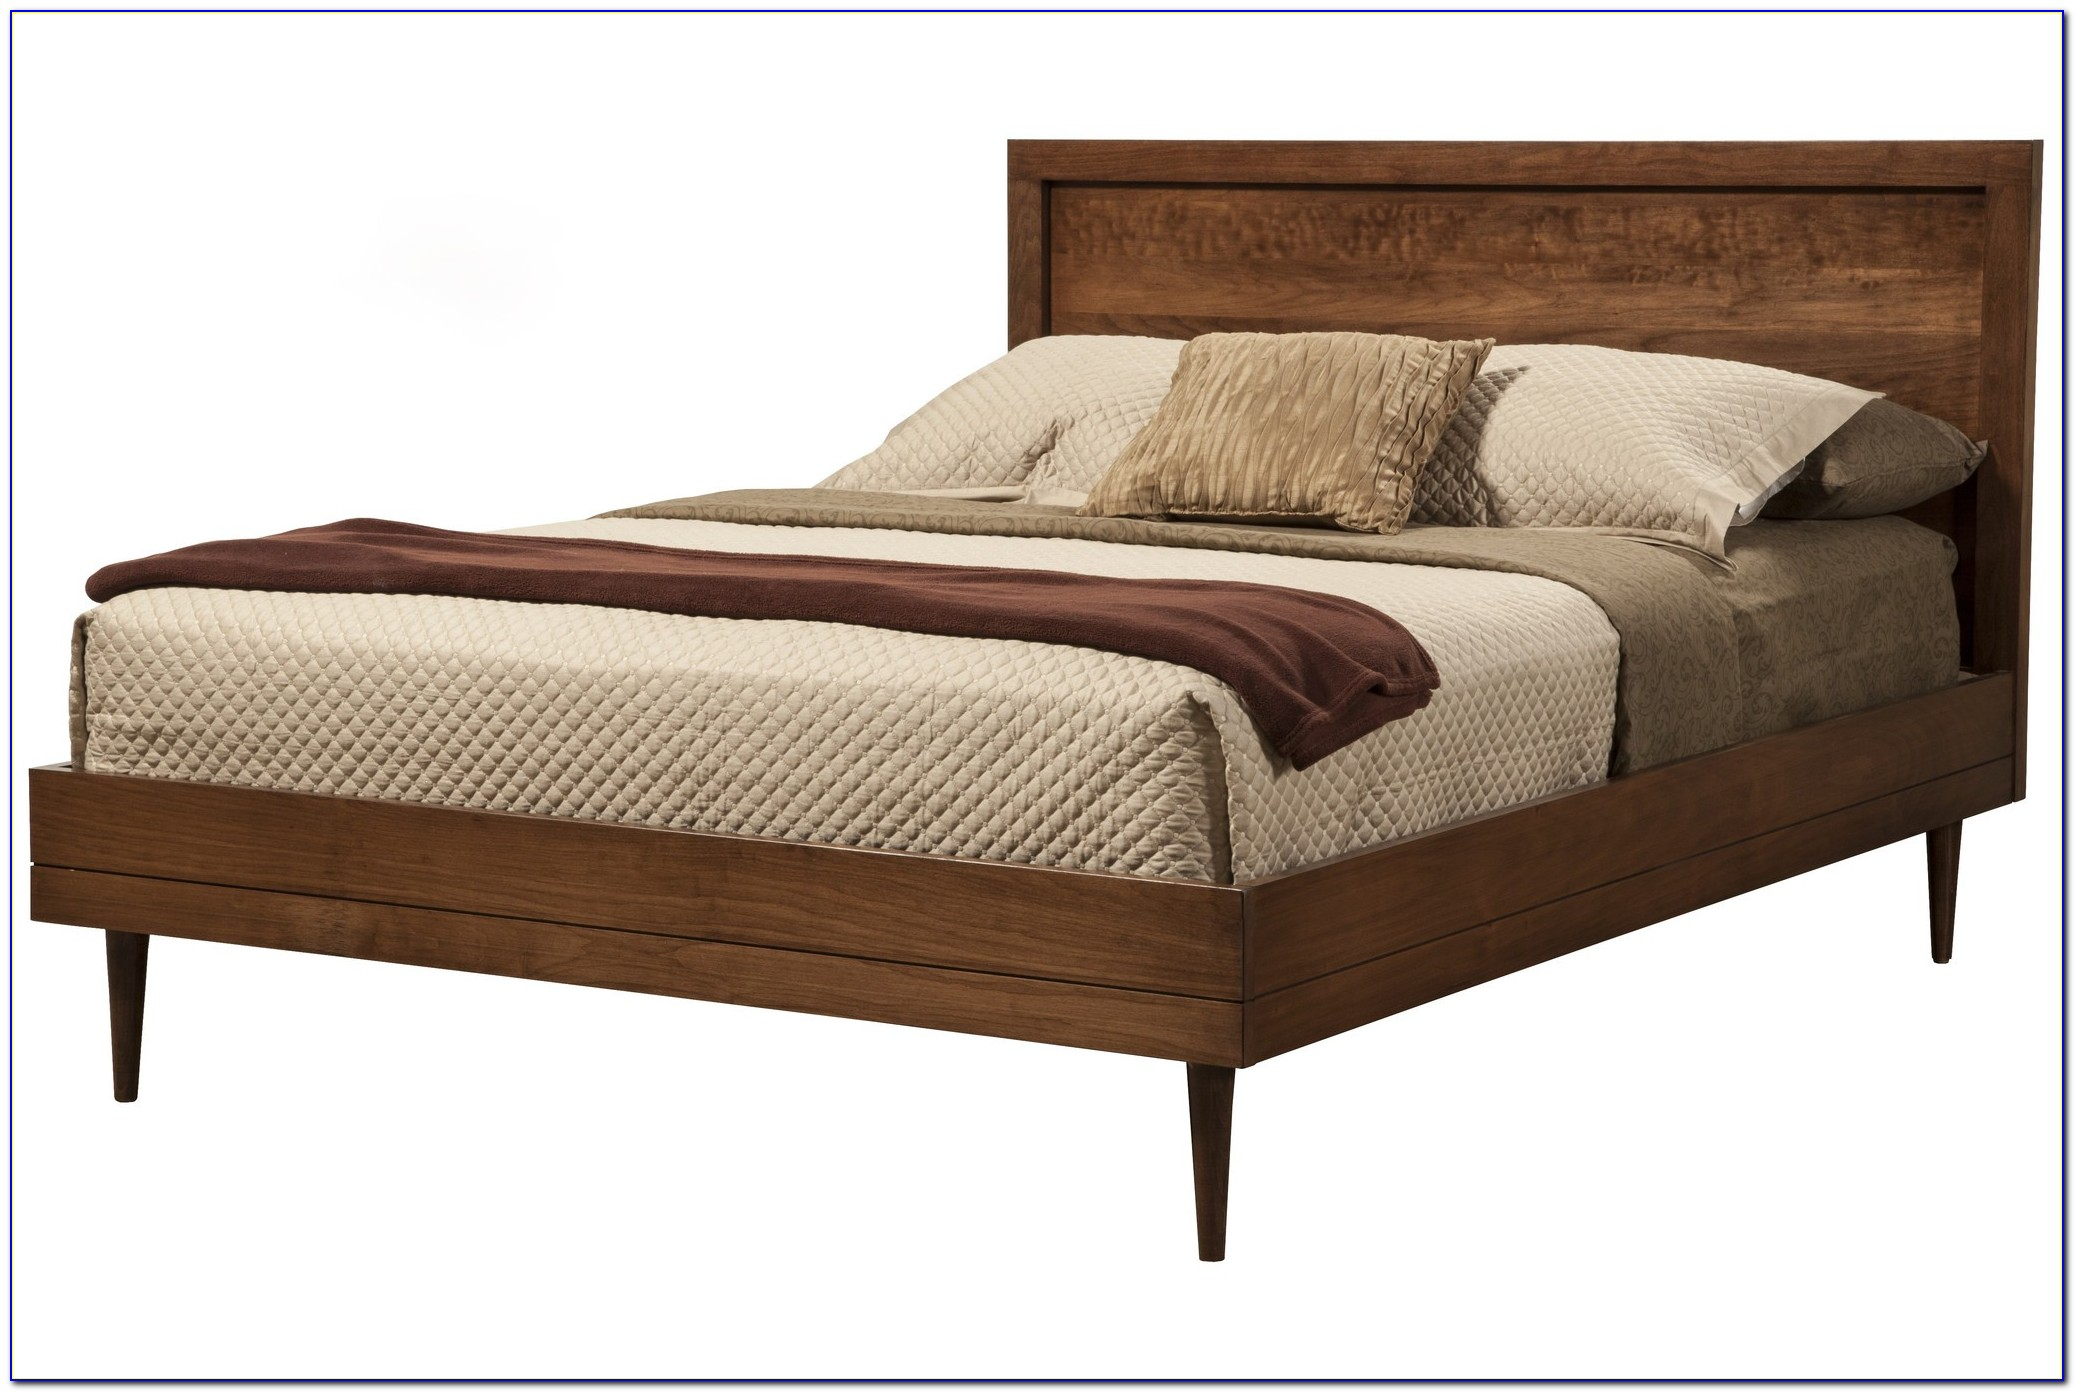 Queen Bed Frame With Headboard And Drawers